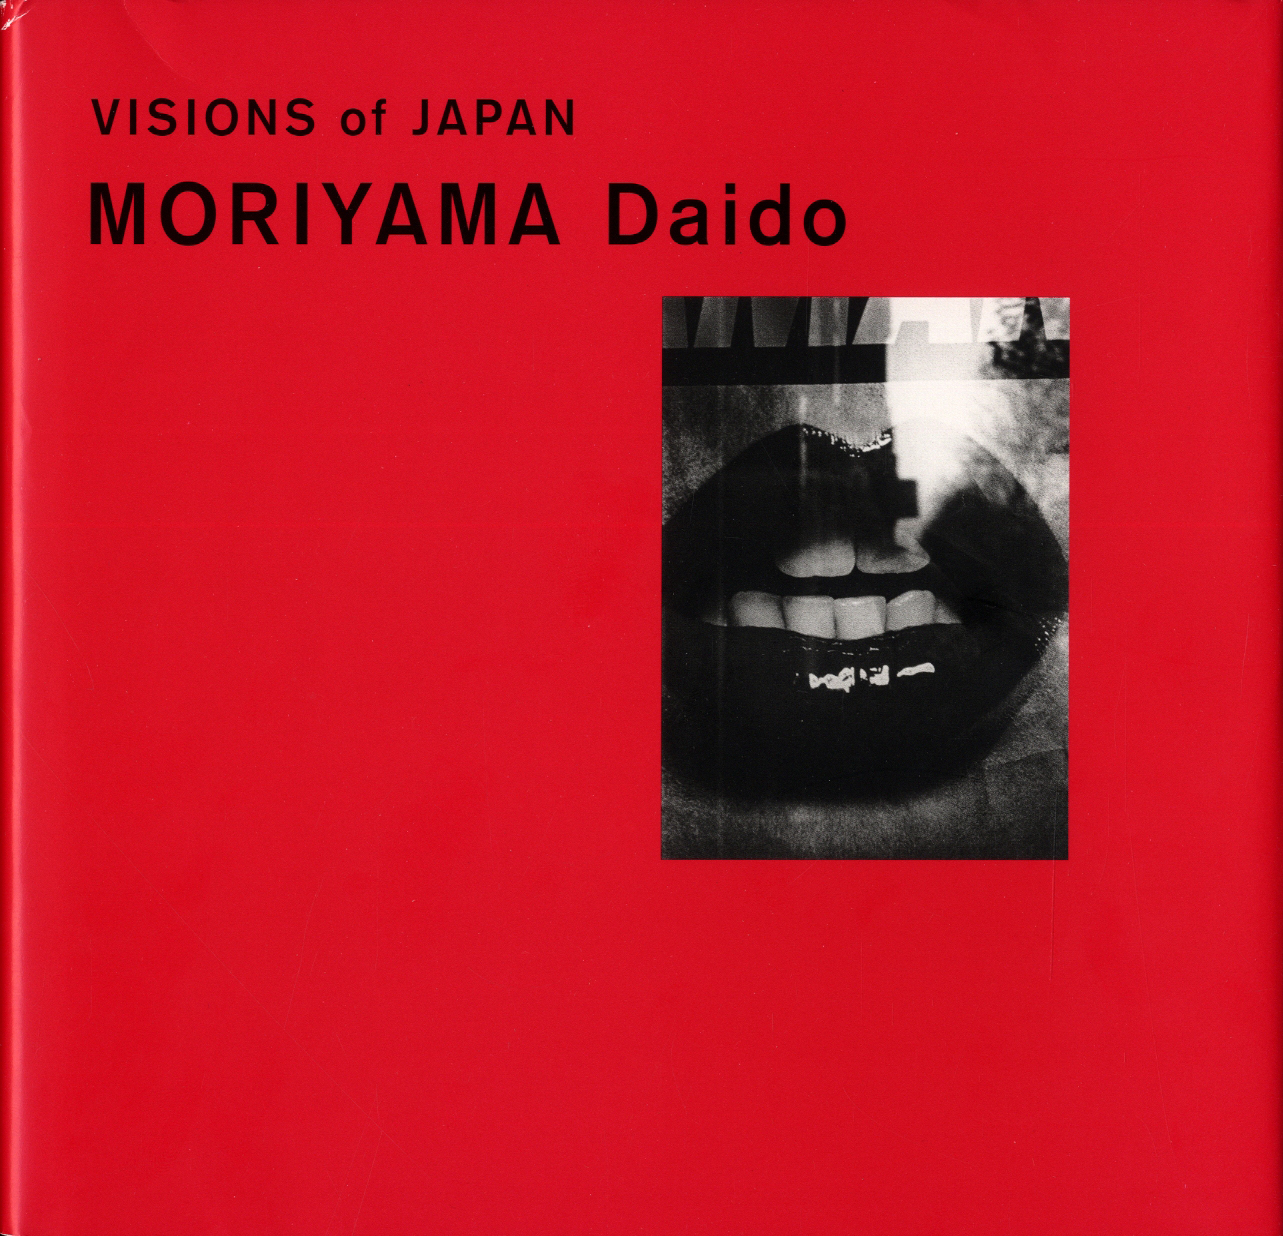 MORIYAMA Daido: Visions of Japan [SIGNED]